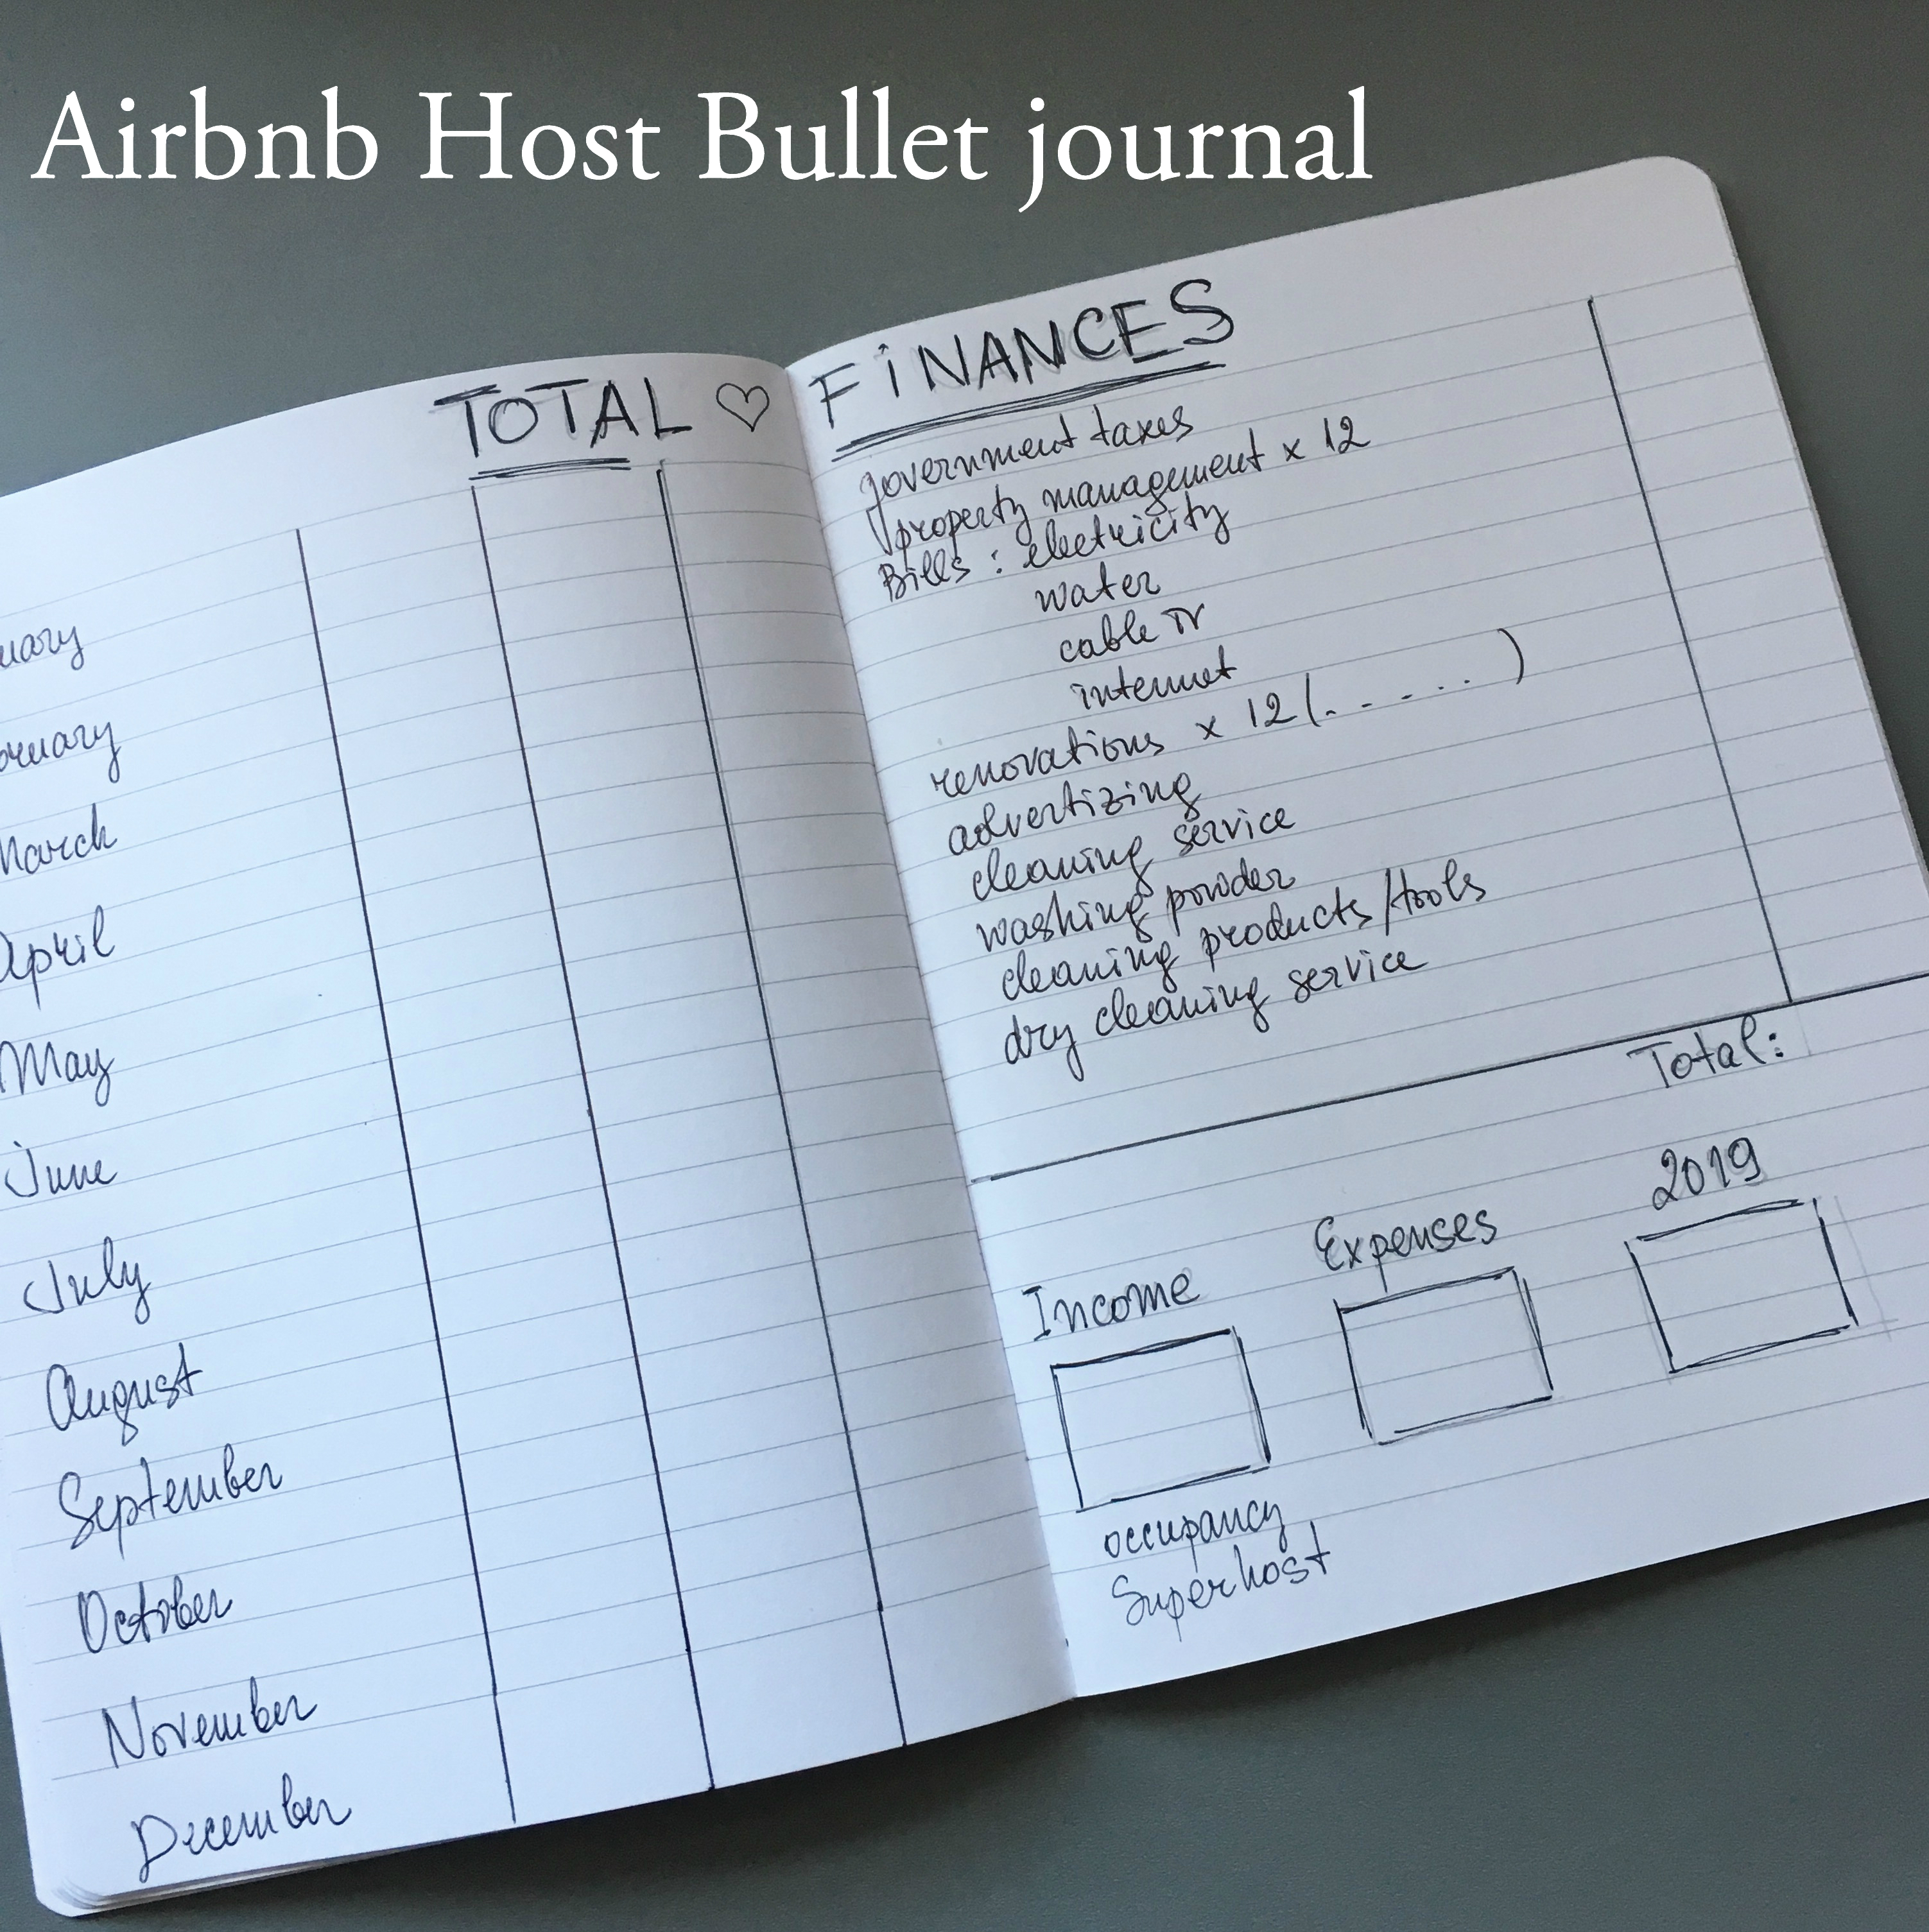 Airbnb host bullet journal - Total finance pages - black ink on a white paper